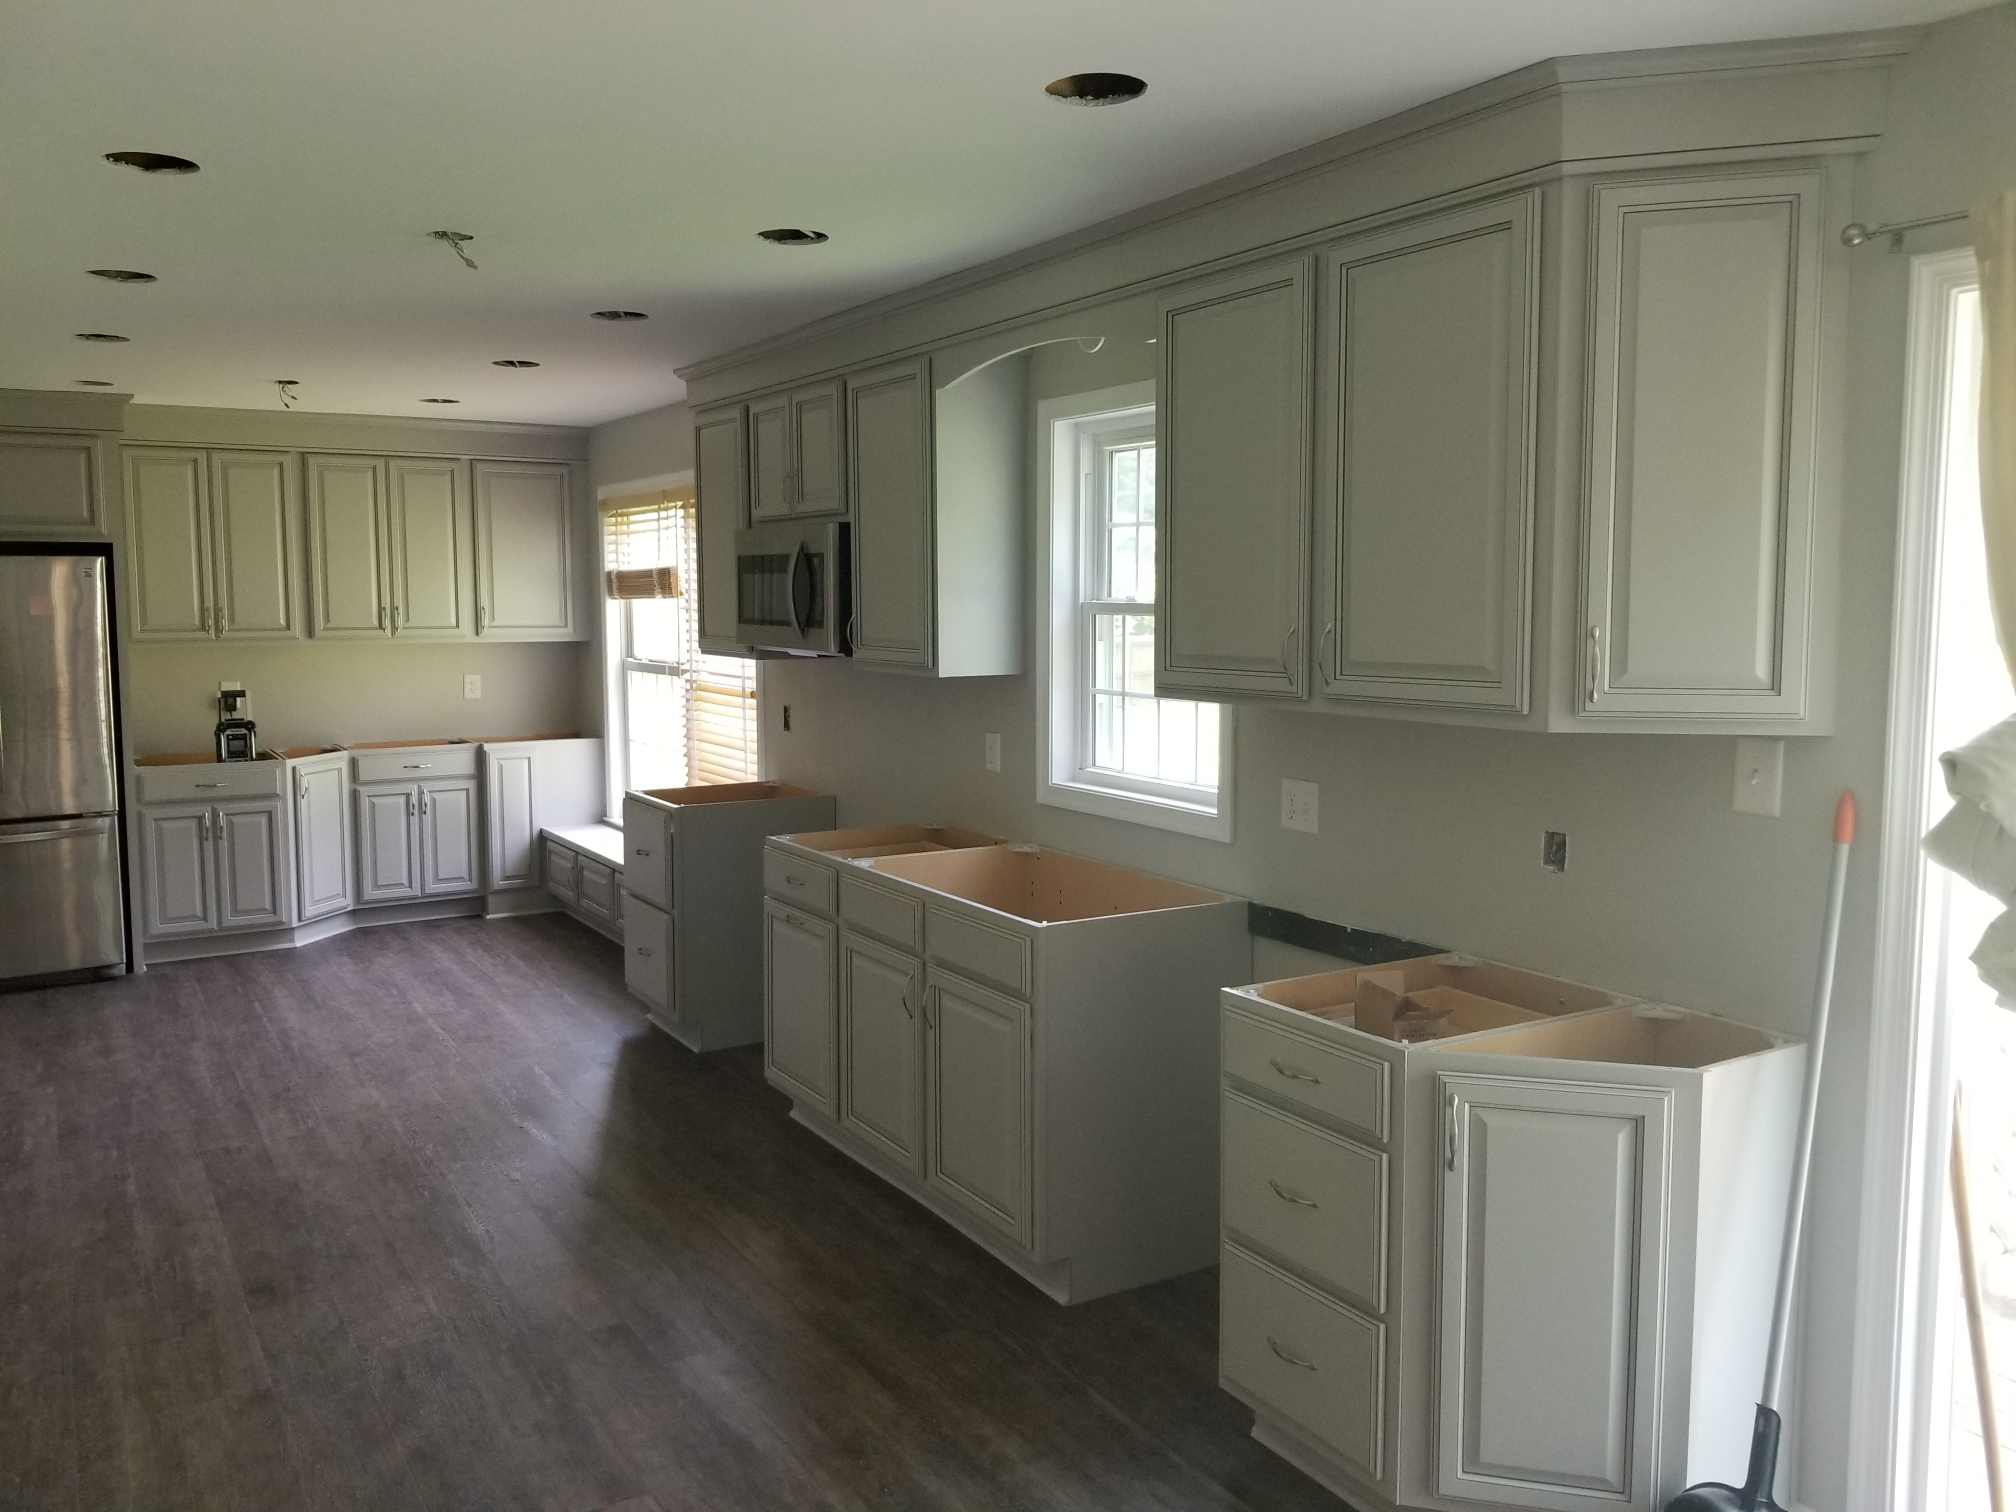 Elkton, MD - A custom kitchen we are working on